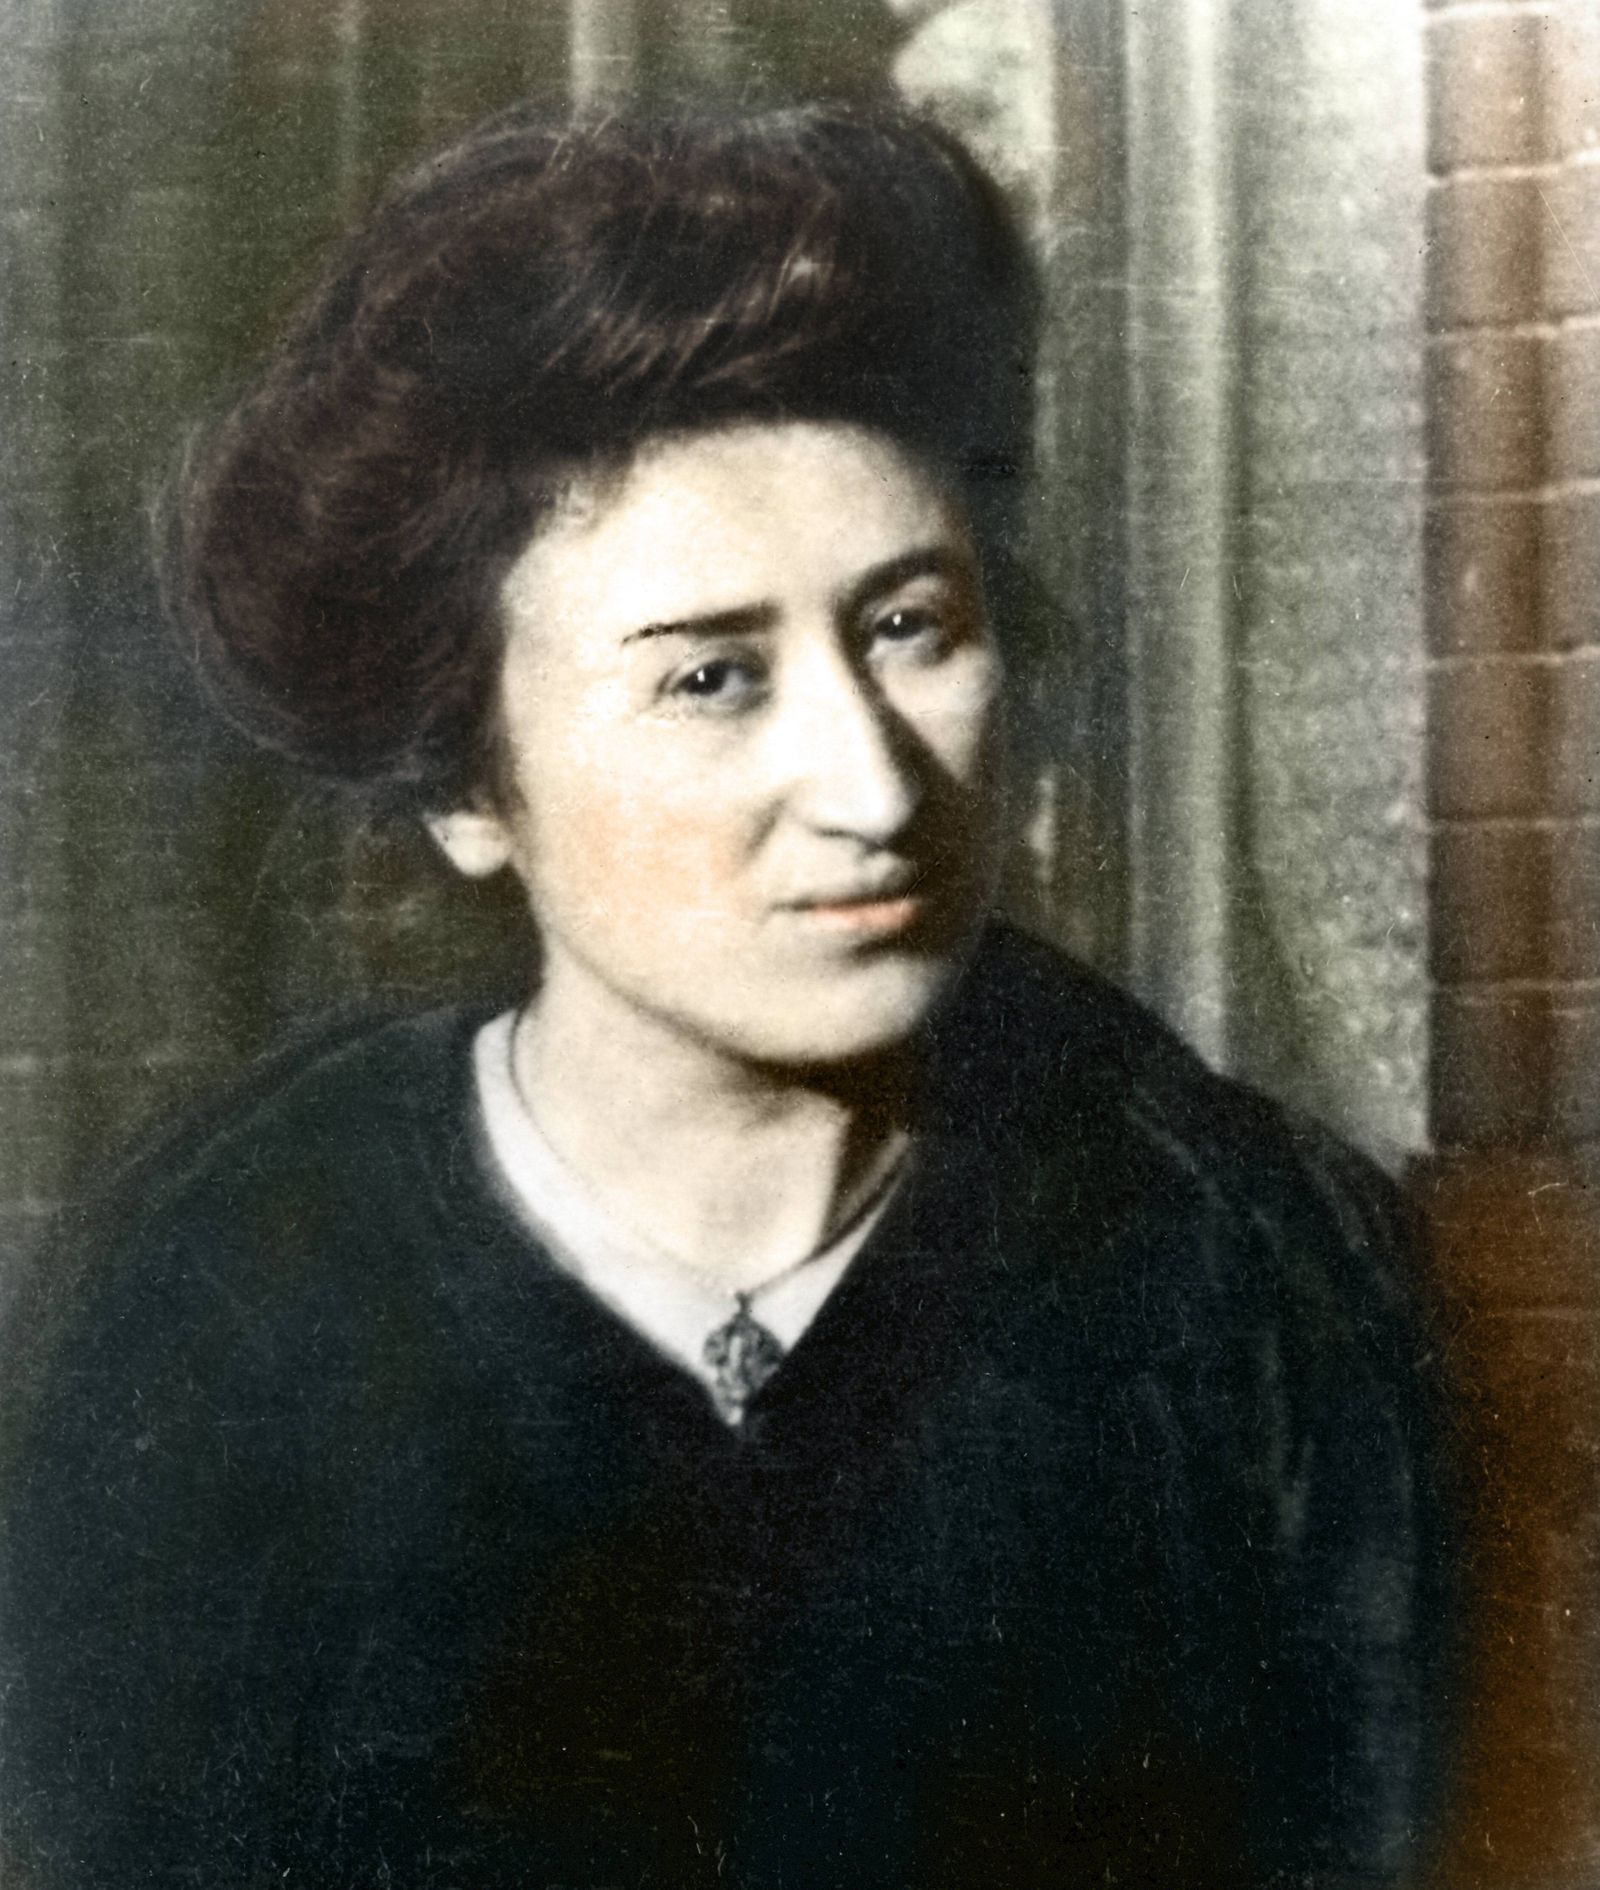 Portrait of Rosa Luxemburg (Rosa Luxembourg) (1870-1919) German Socialist and member of the German Communist Party - Ph